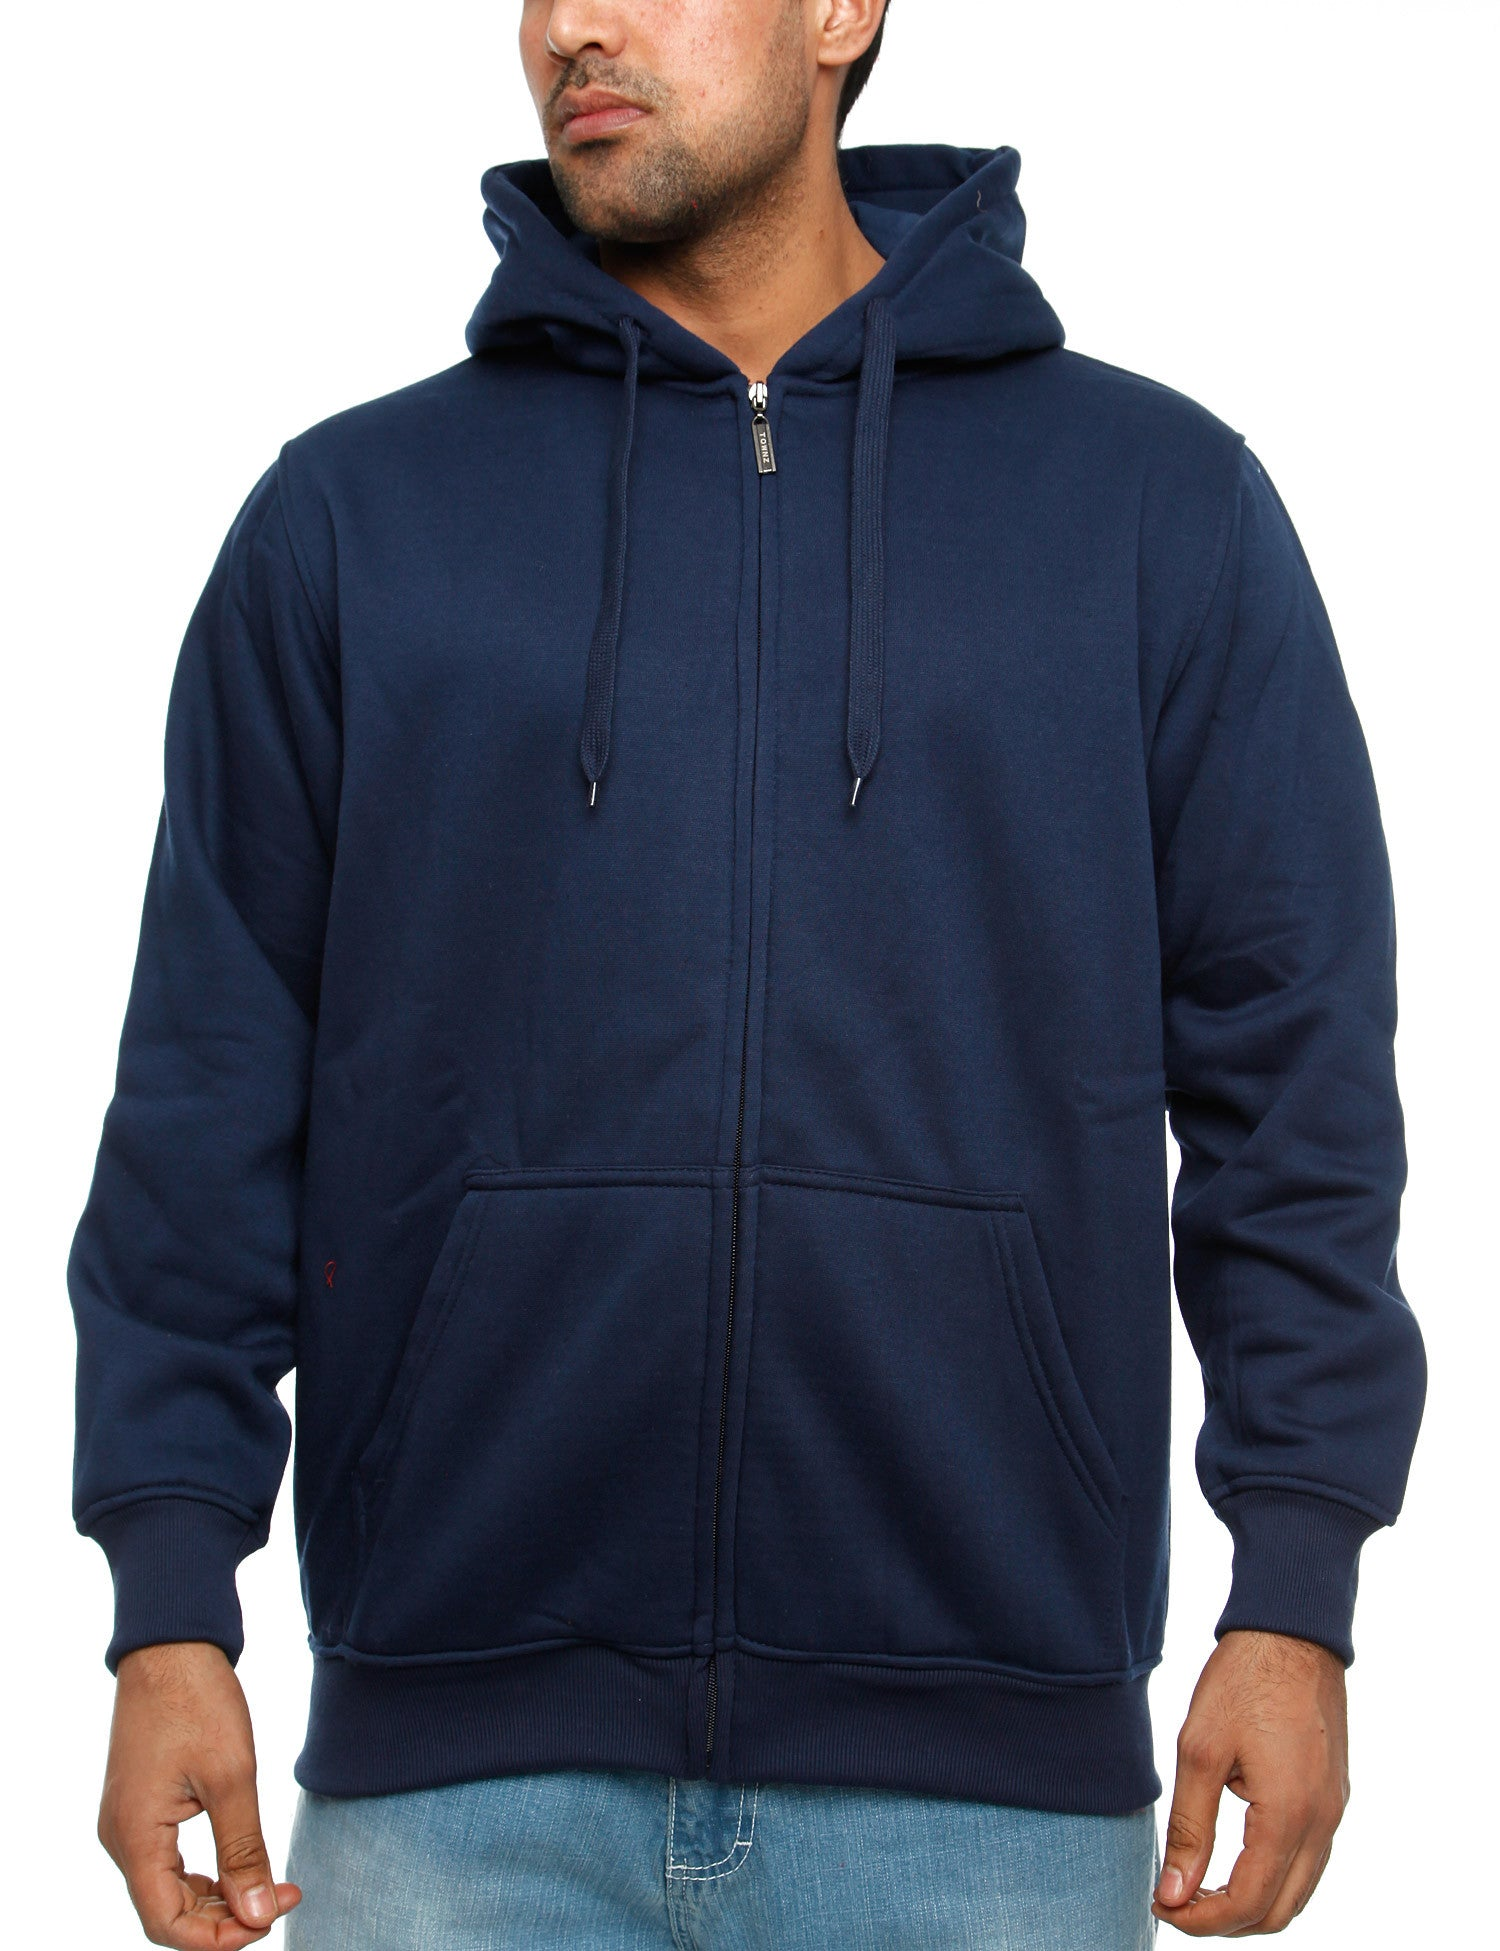 Townz Zip Hoody PS-034B Navy